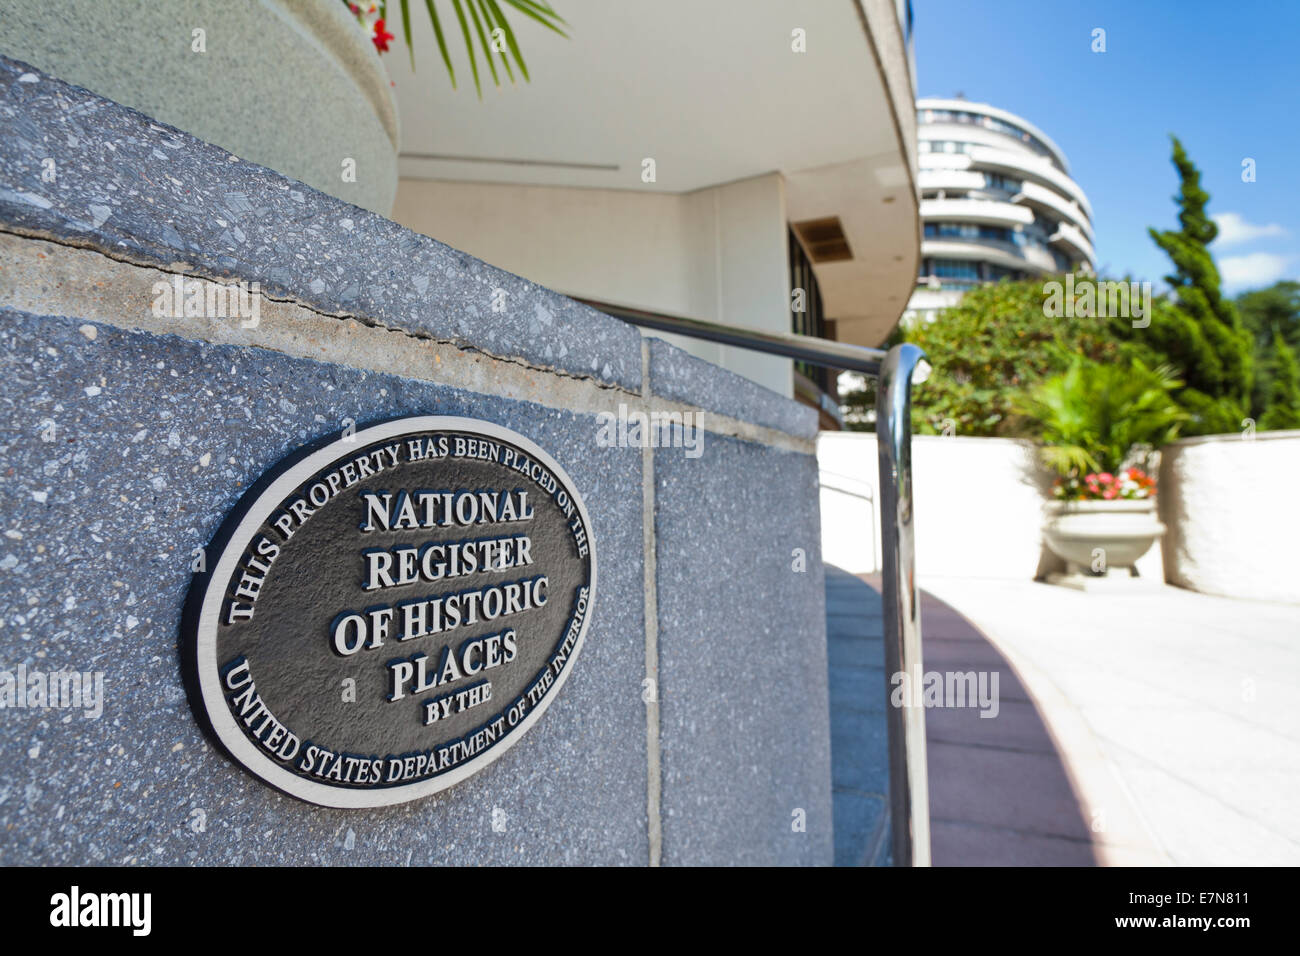 National Register of Historic Places plaque on the Watergate building - Washington, DC USA Stock Photo